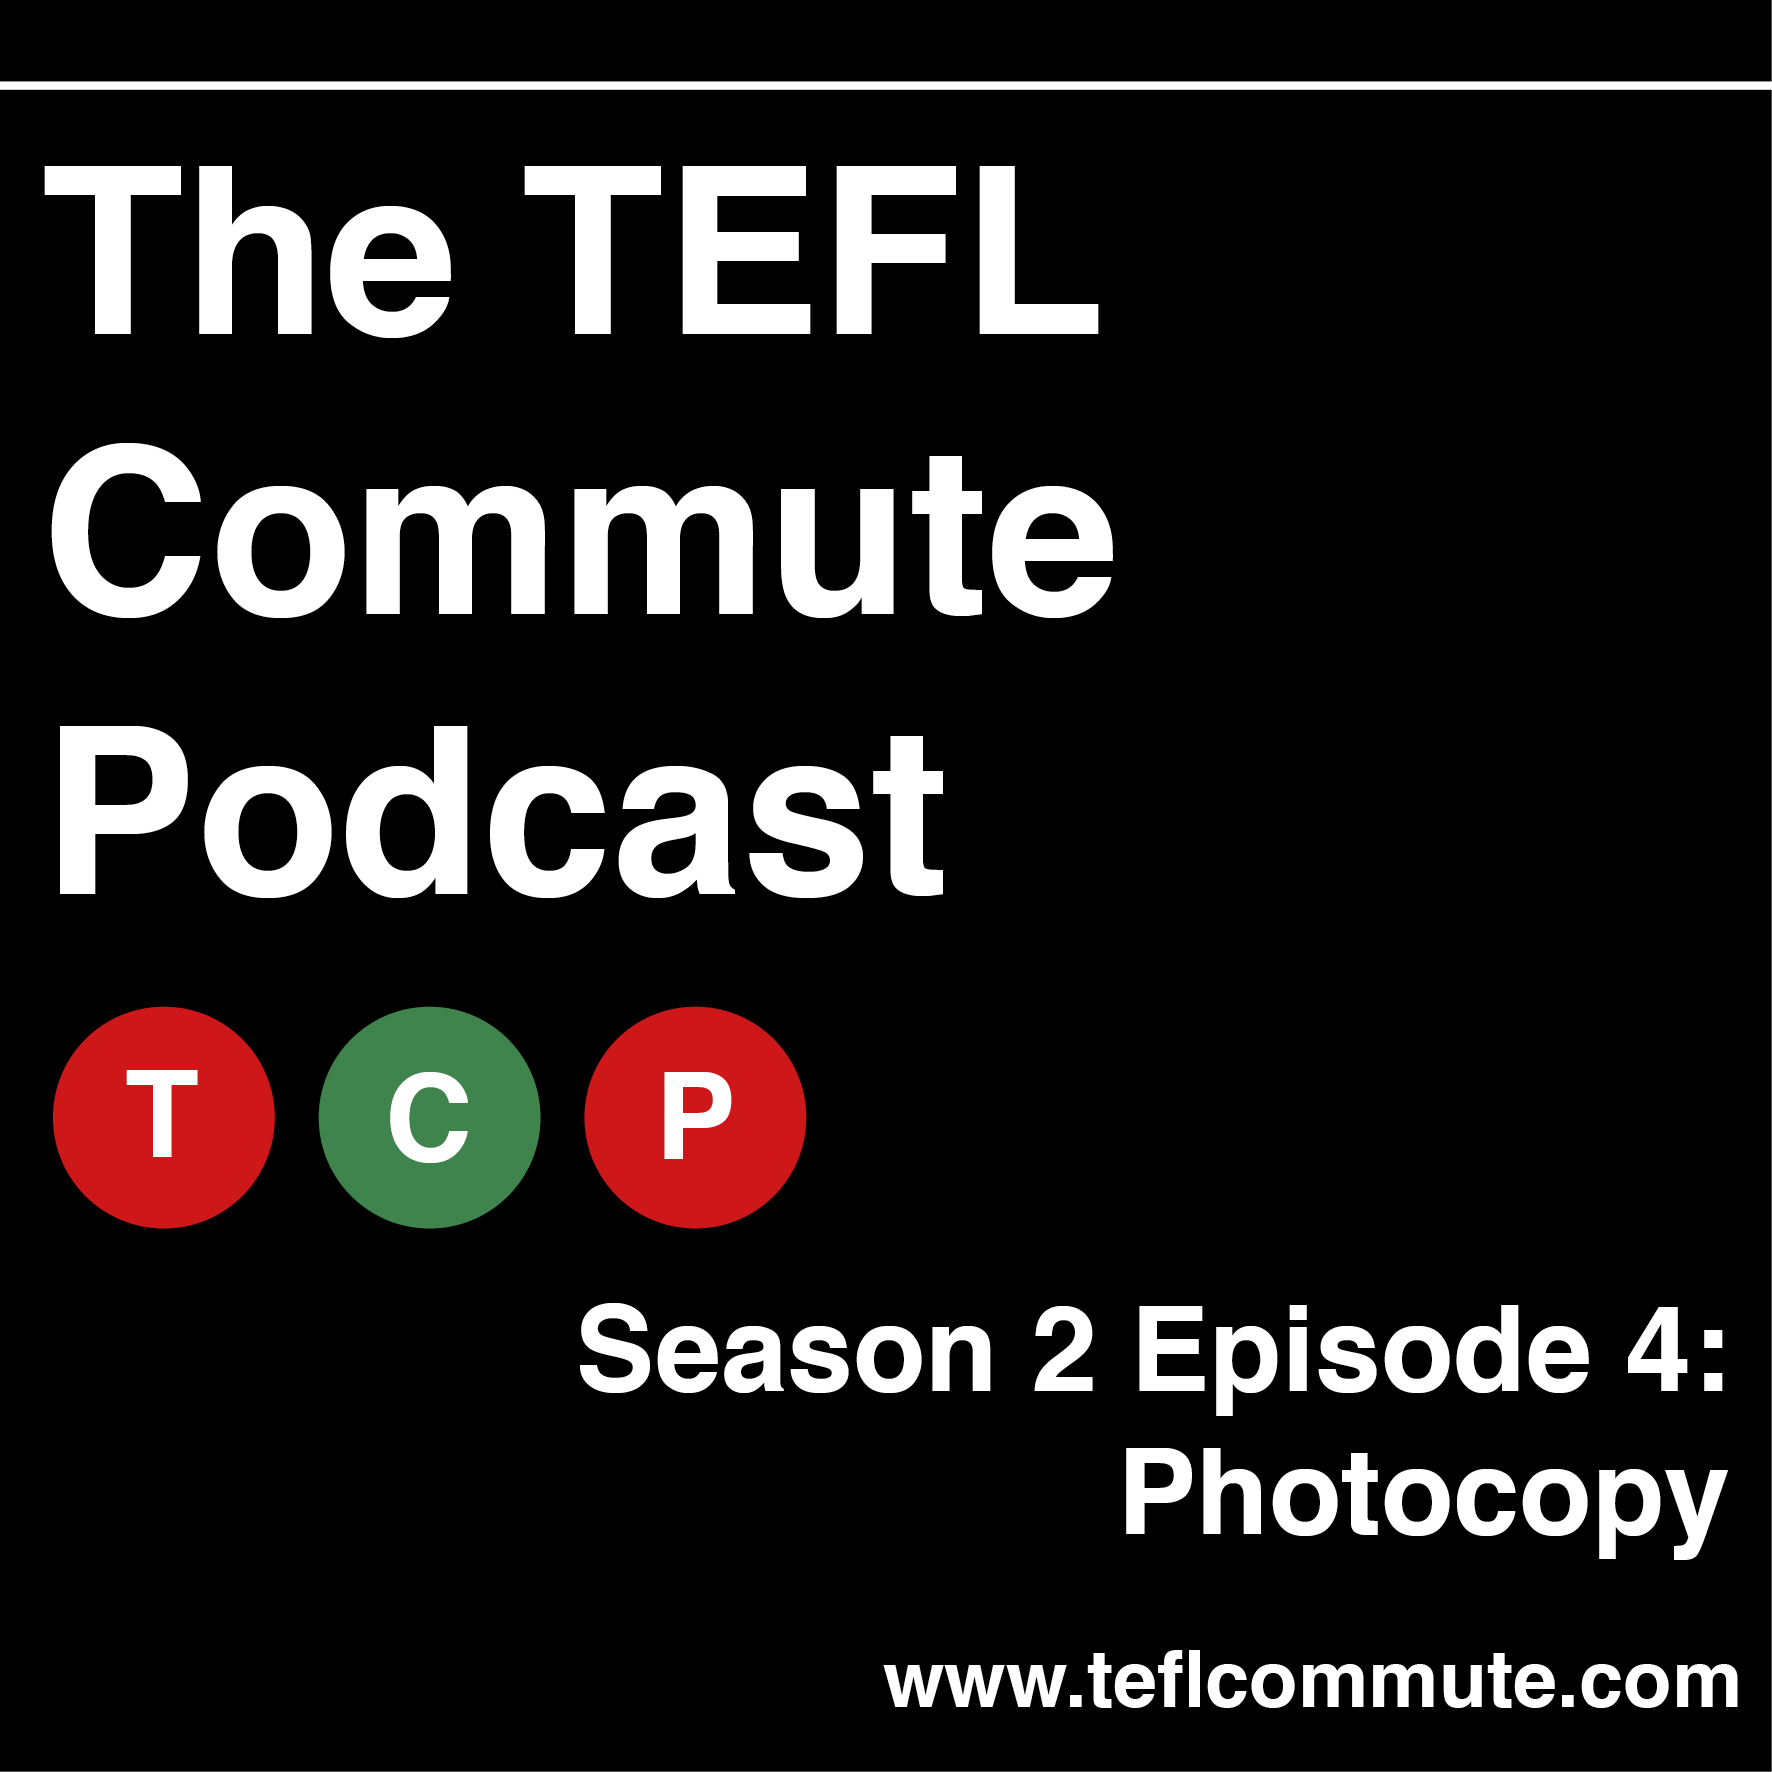 TEFL Commute s2e4 poster - photocopy